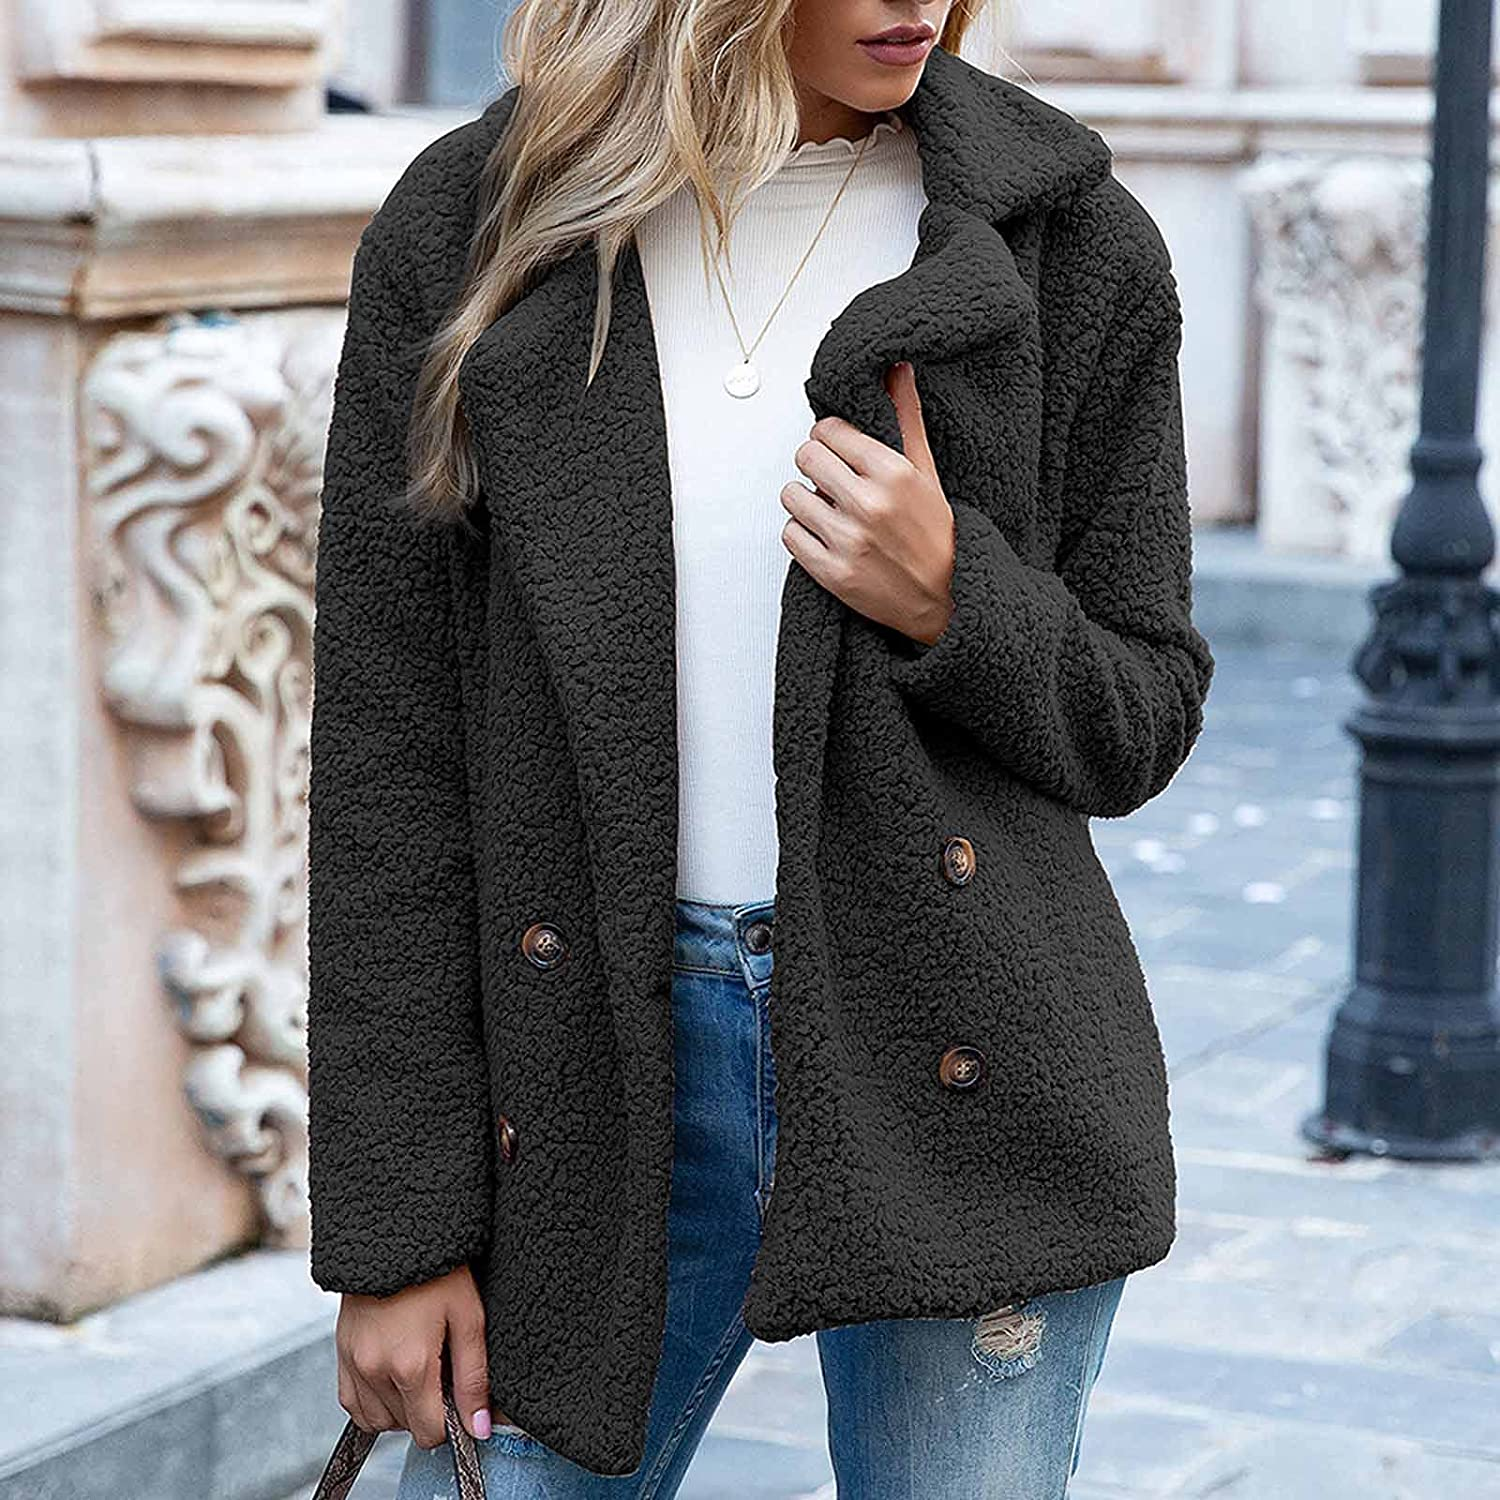 Womens Ladies Warm Jacket Winter Solid Turncoat Down Collar Lambswool Outerwear Plush Long Sleeve Shirt Soft Cardigan